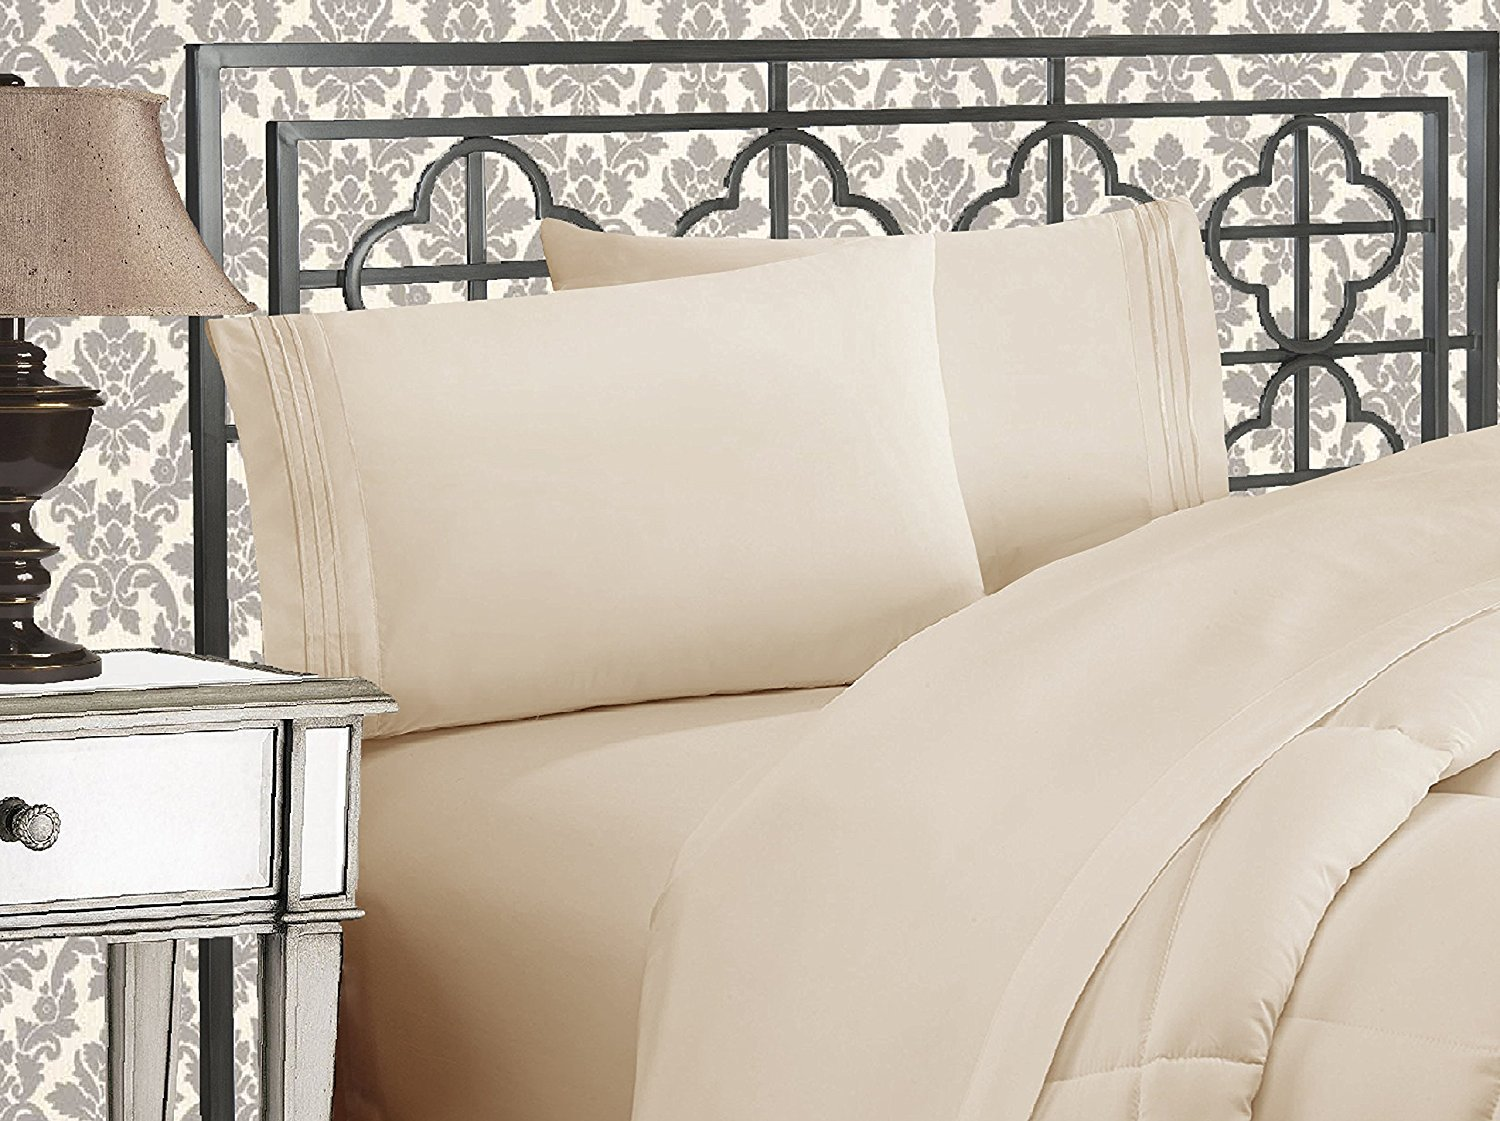 4-Piece Bed Sheet Set with Deep Pockets, Queen Beige